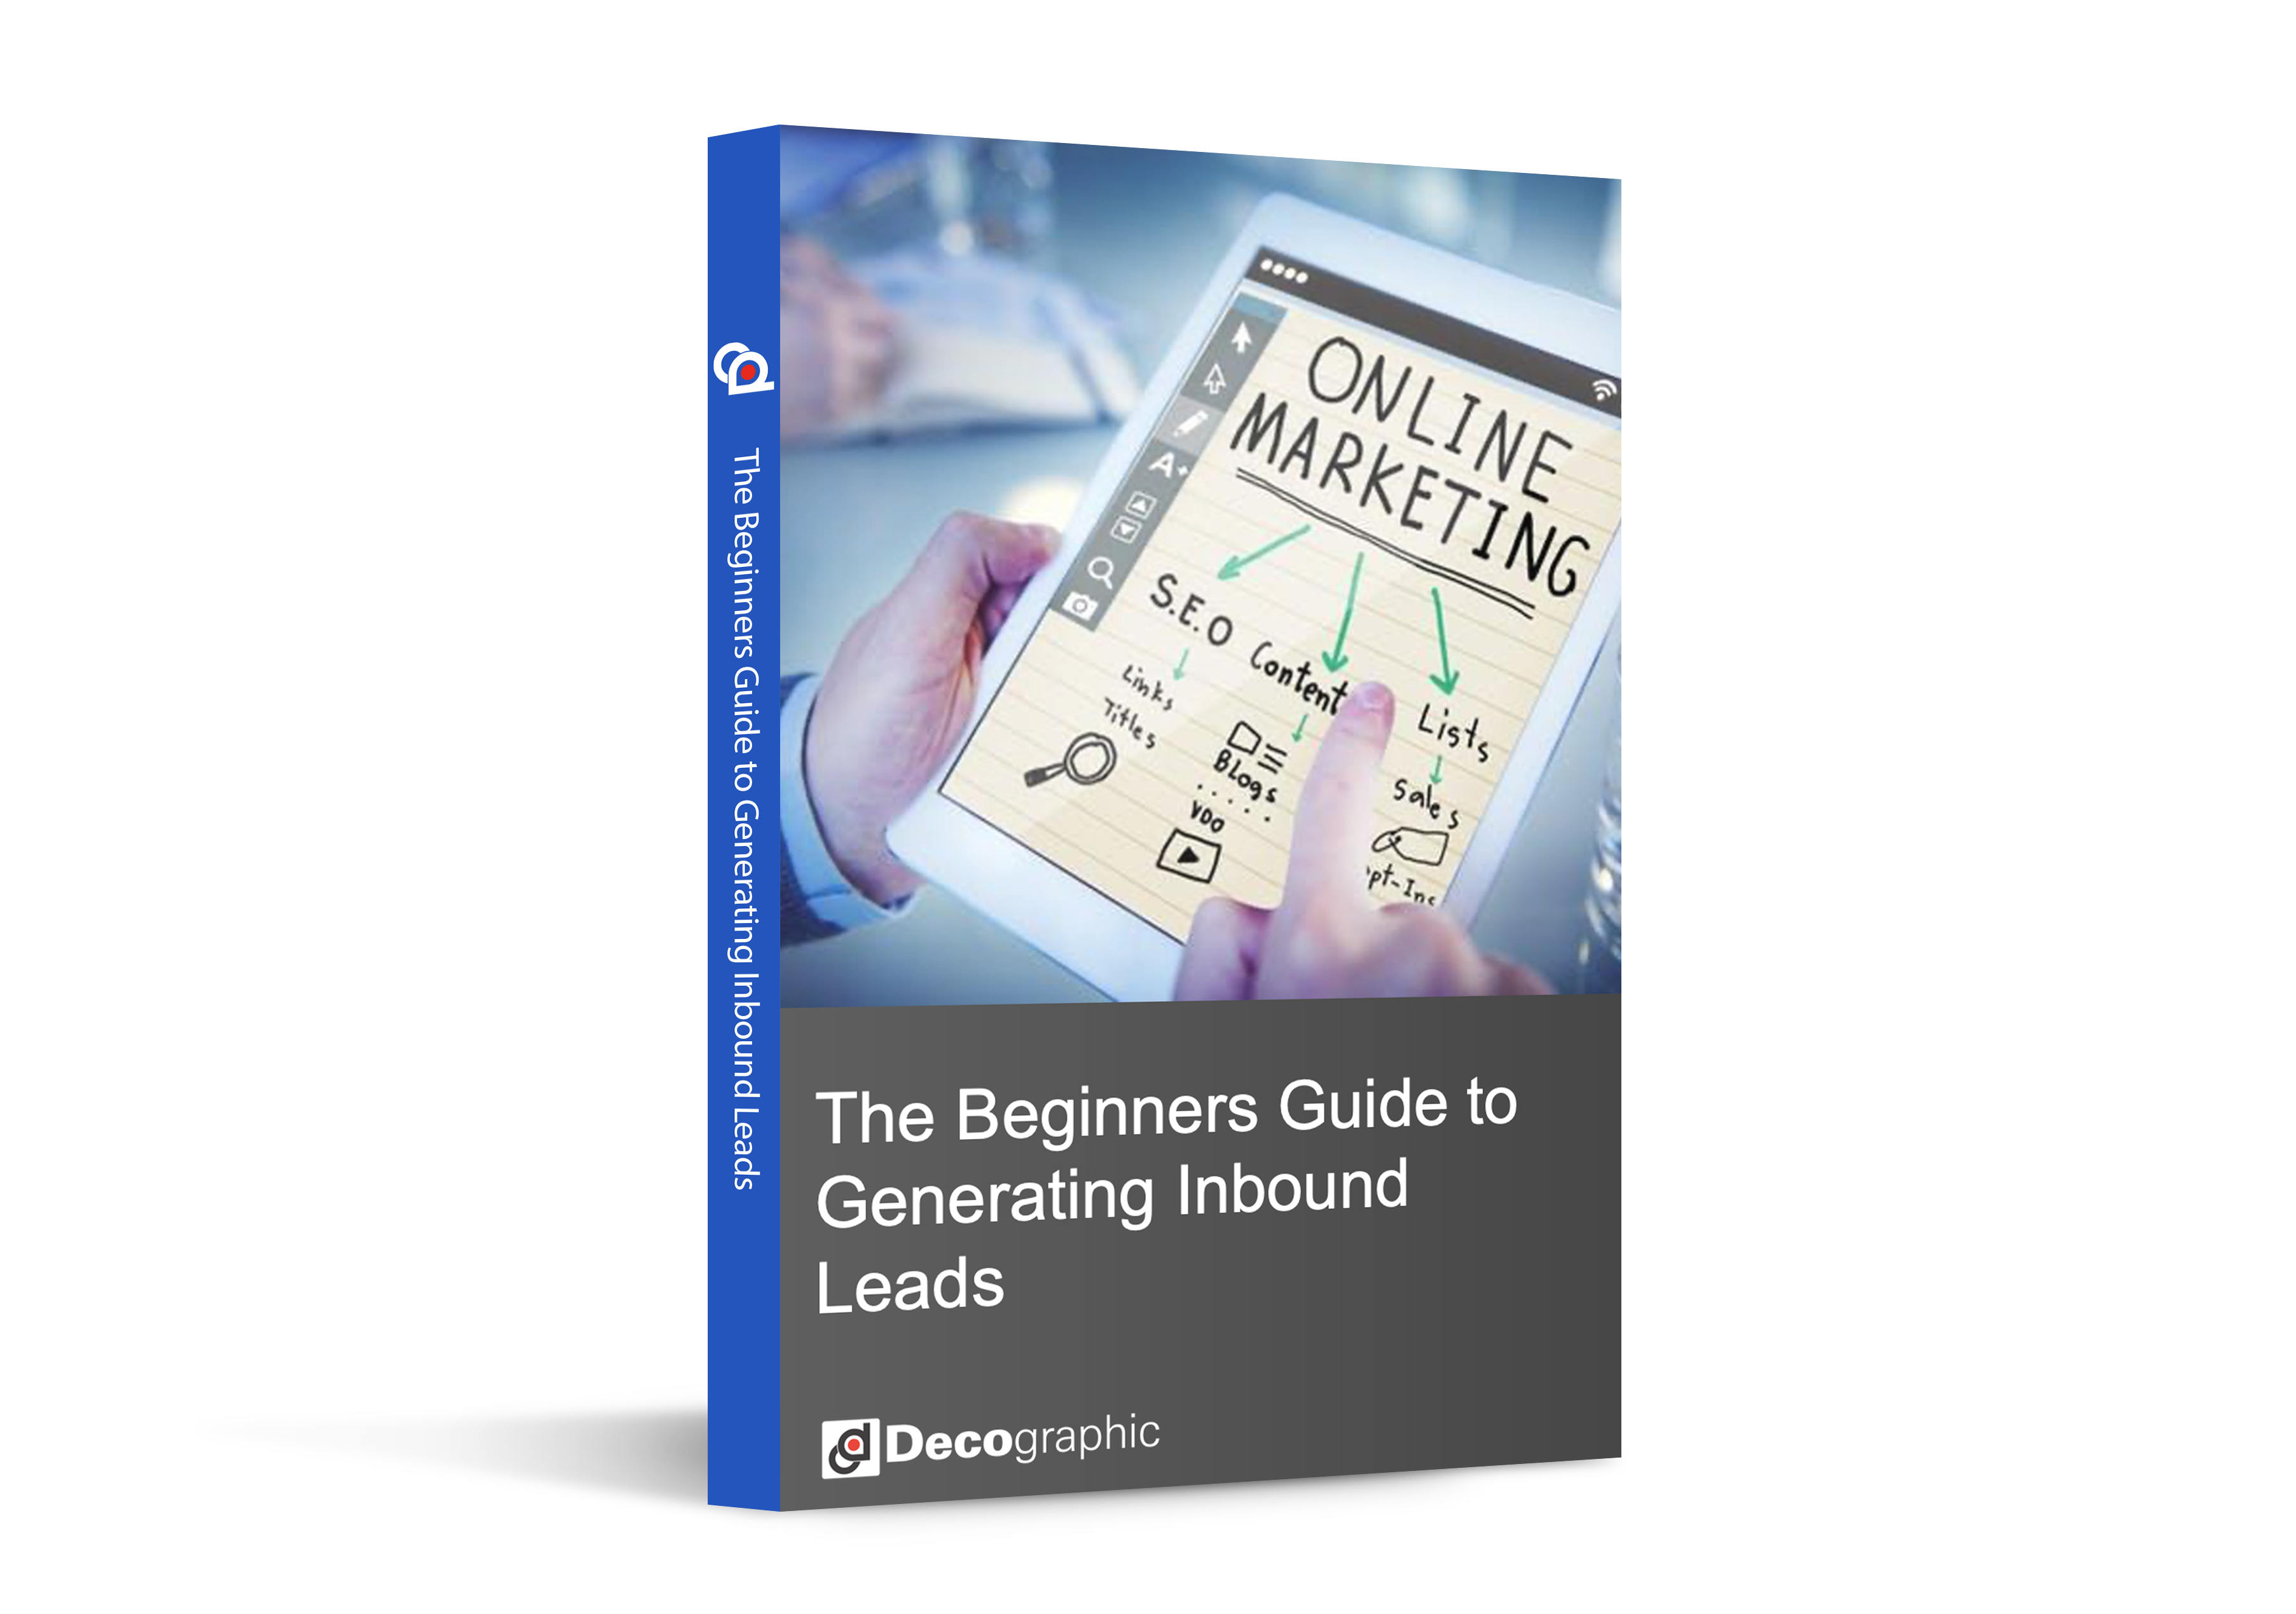 the beginner's guide to generating inbound leads